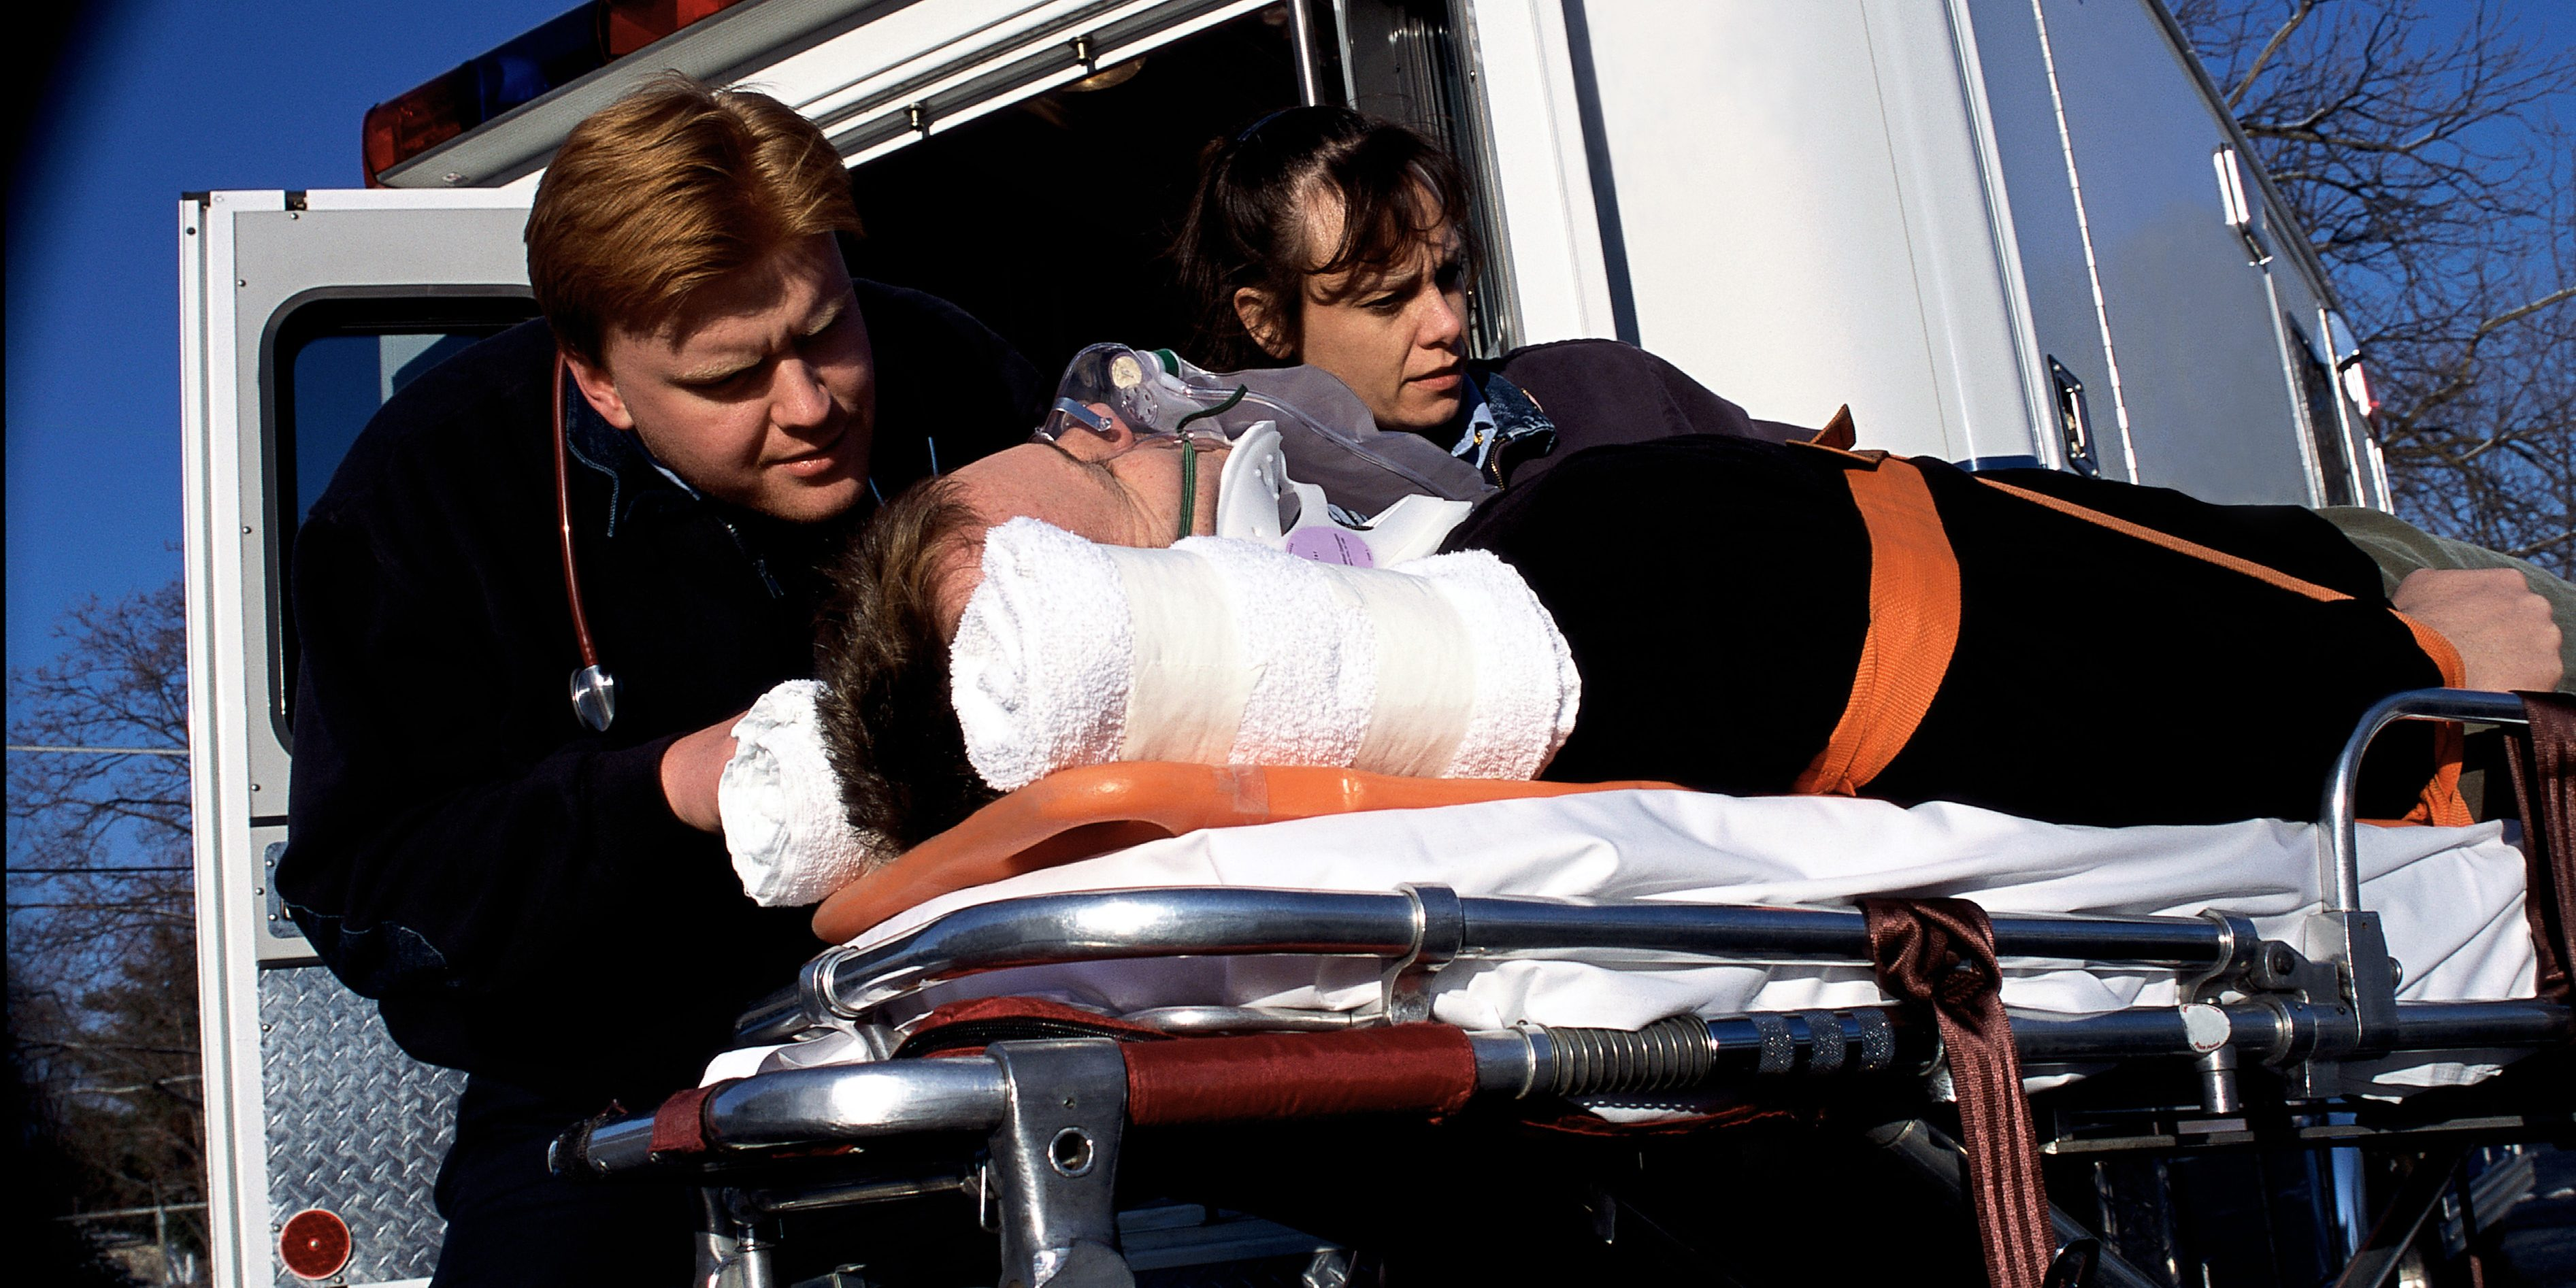 Two Caucasian paramedics, one male and one female, strapping an injured Caucasian male into a stretcher